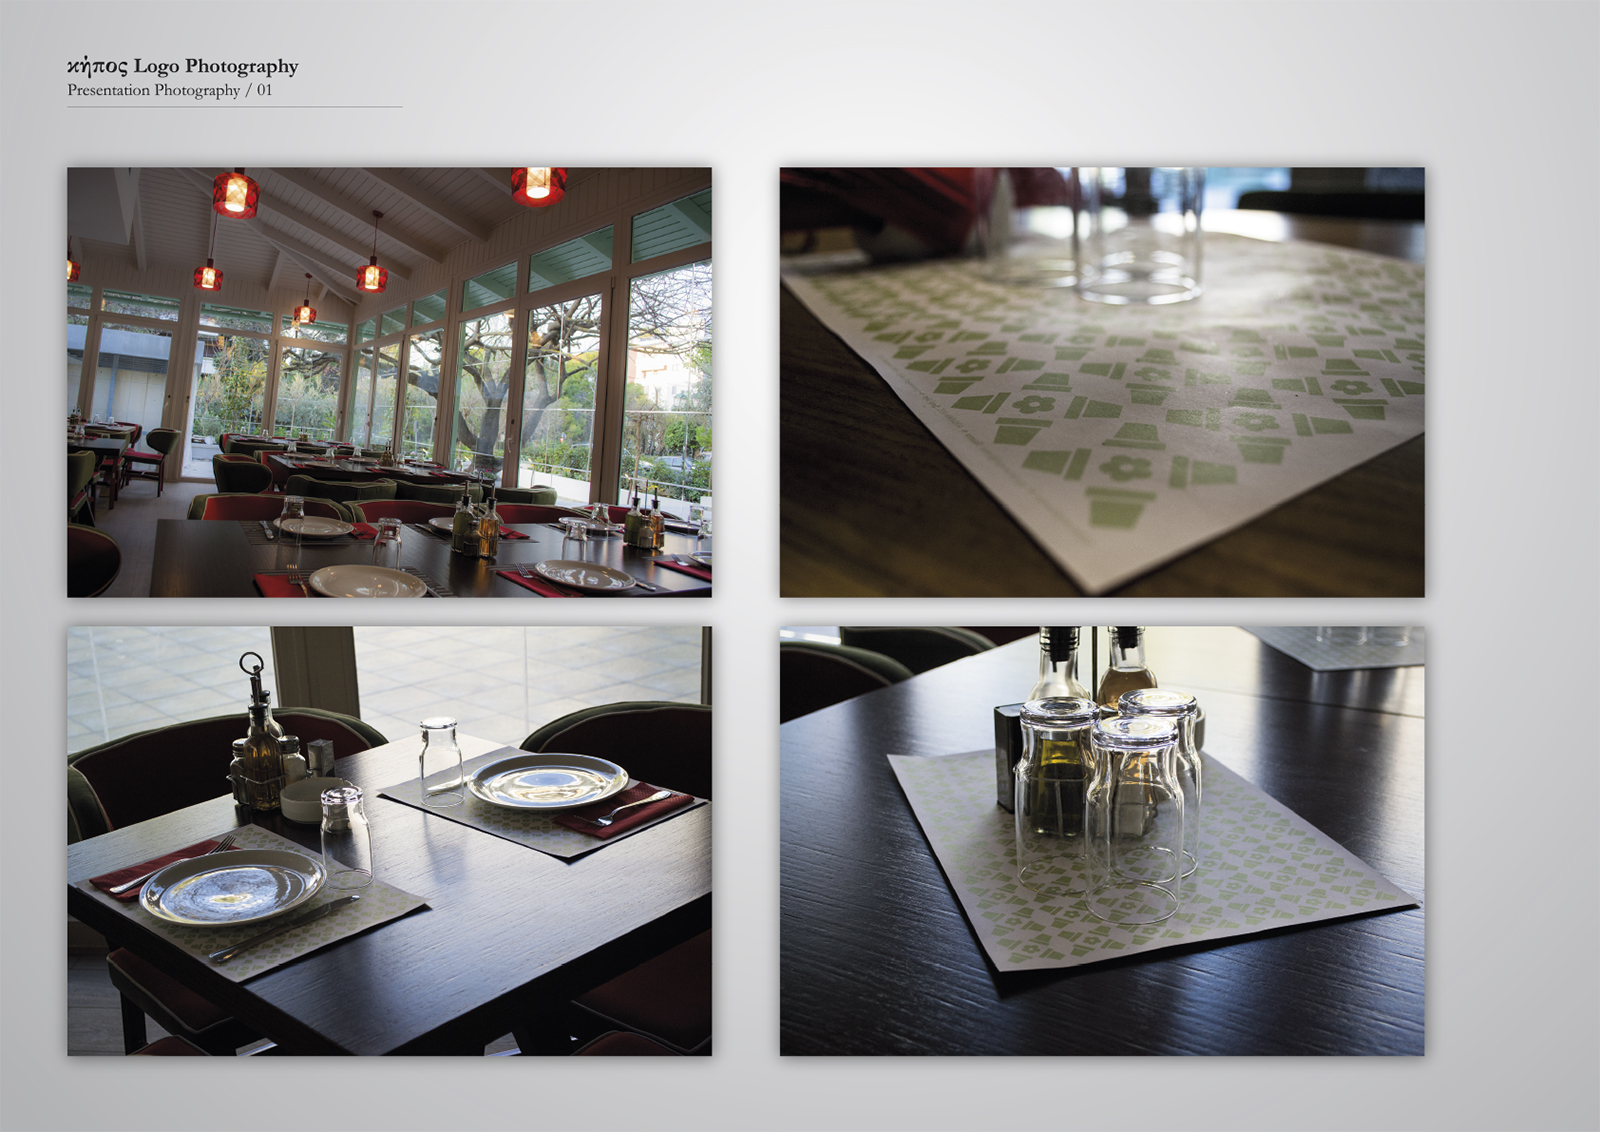 Corporate Identity Kipos Restaurant_Photography_1_Yianart